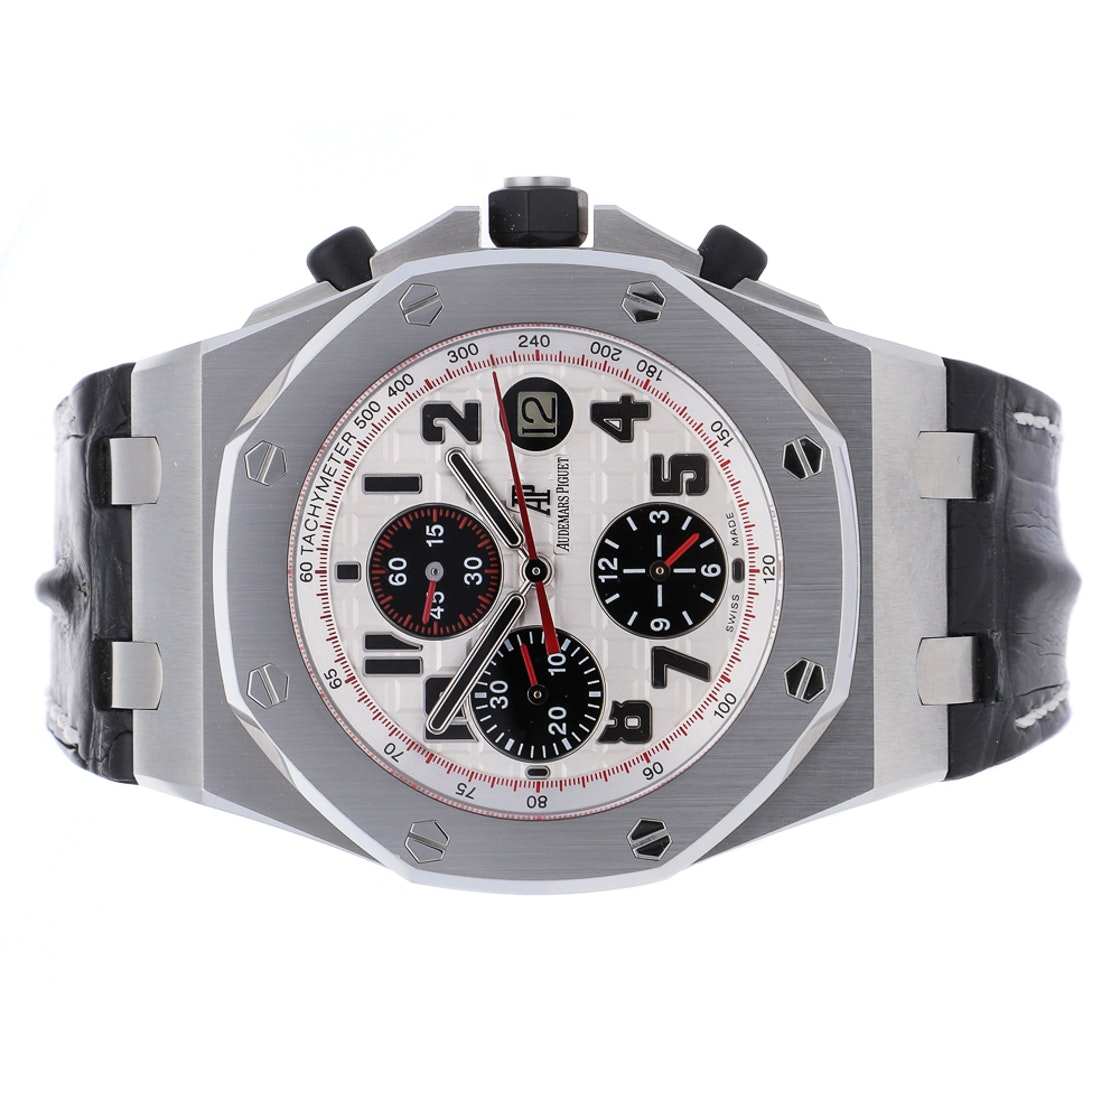 Audemars Piguet Royal Oak Offshore Chronograph 26170ST.OO.D101CR.02